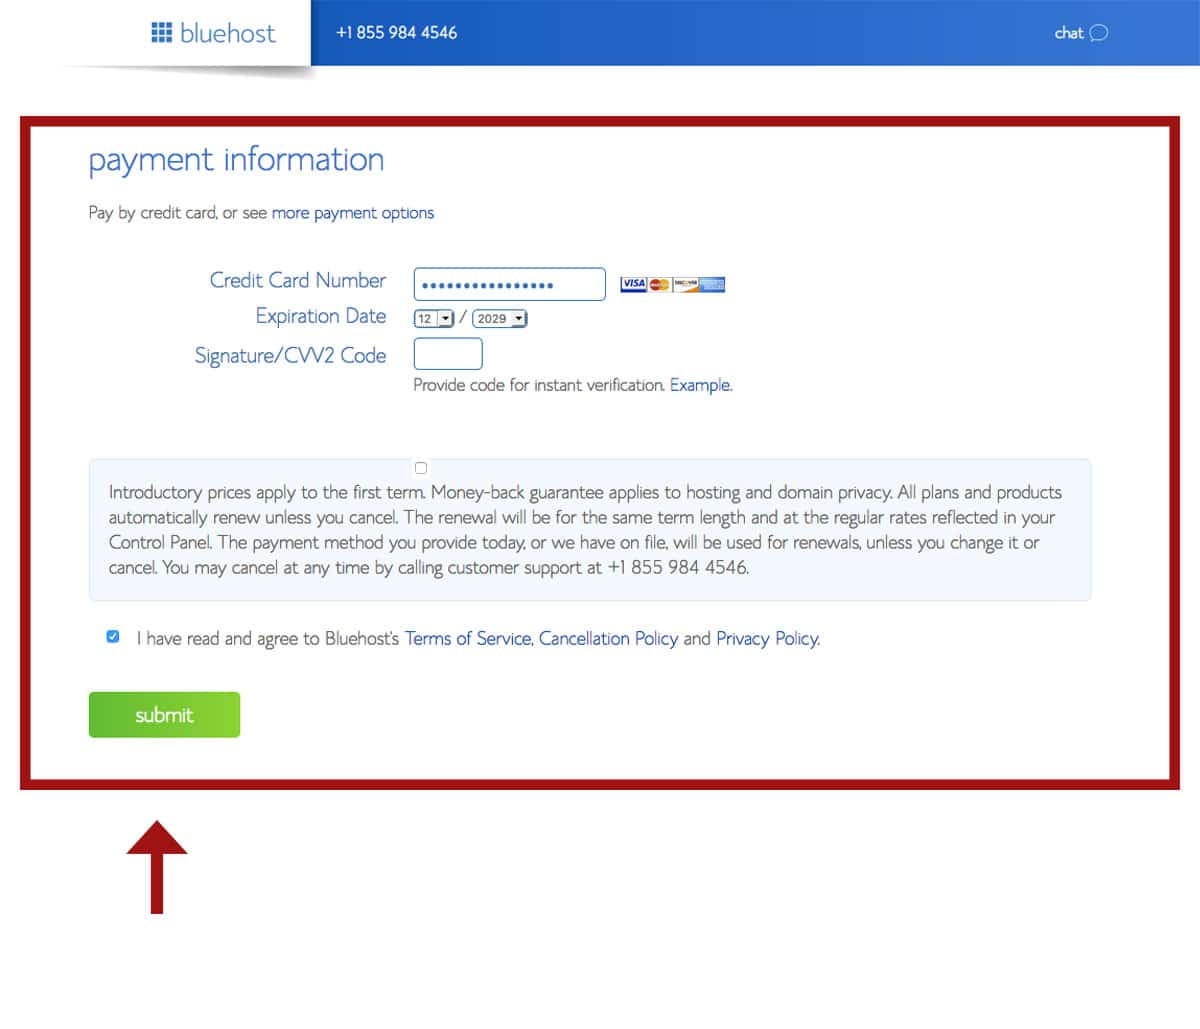 Bluehost sign up forms